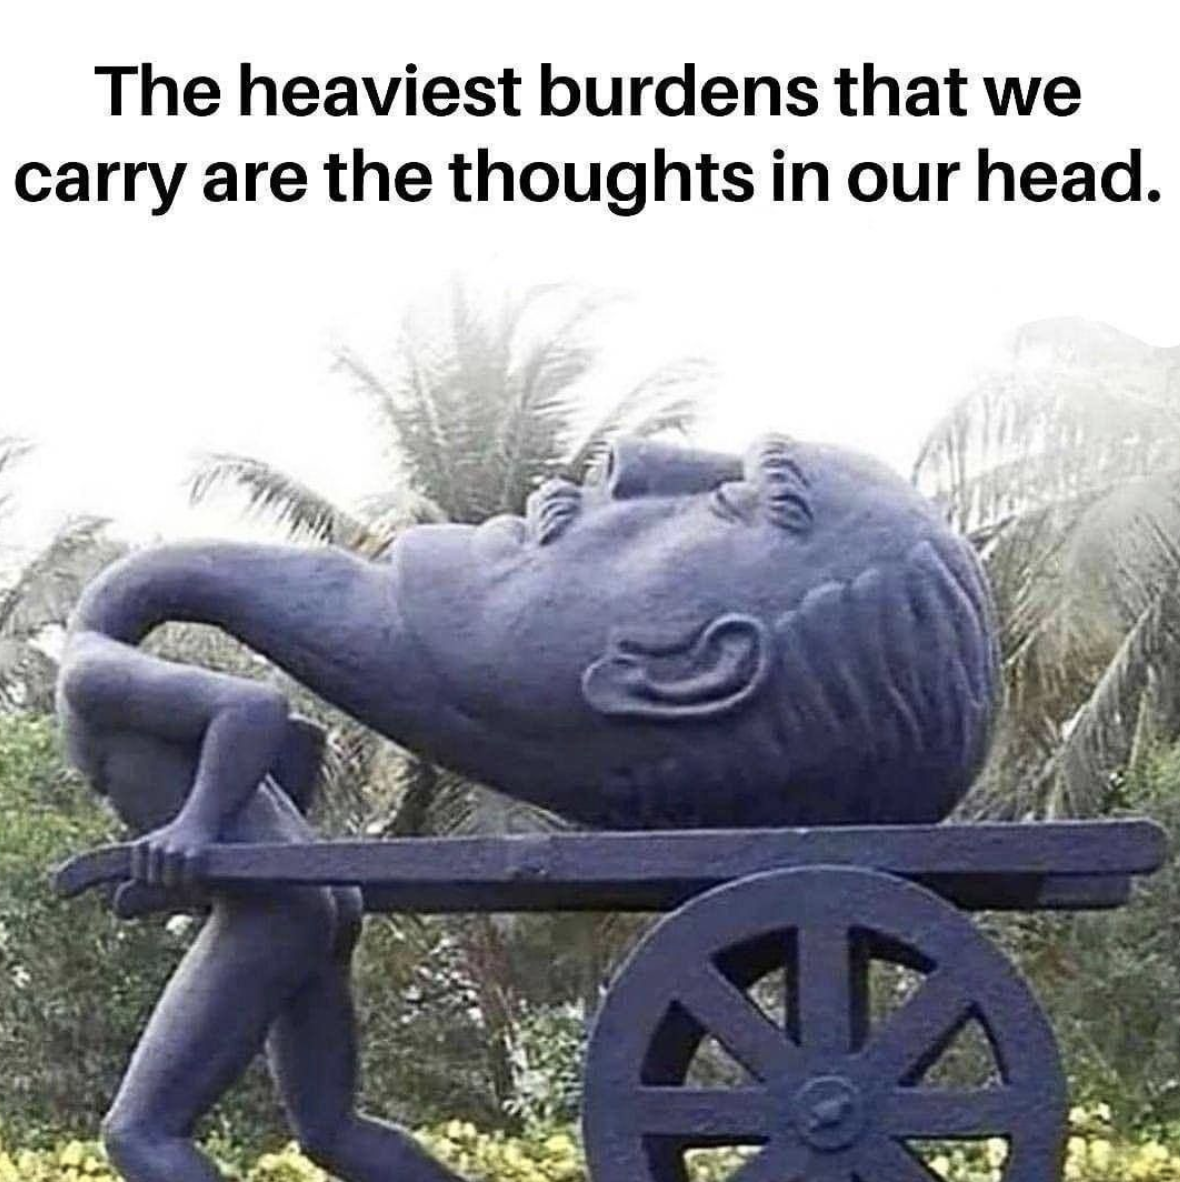 [Image] The heaviest burdens that we carry are the thoughts in our head. Change your life by always think positively.